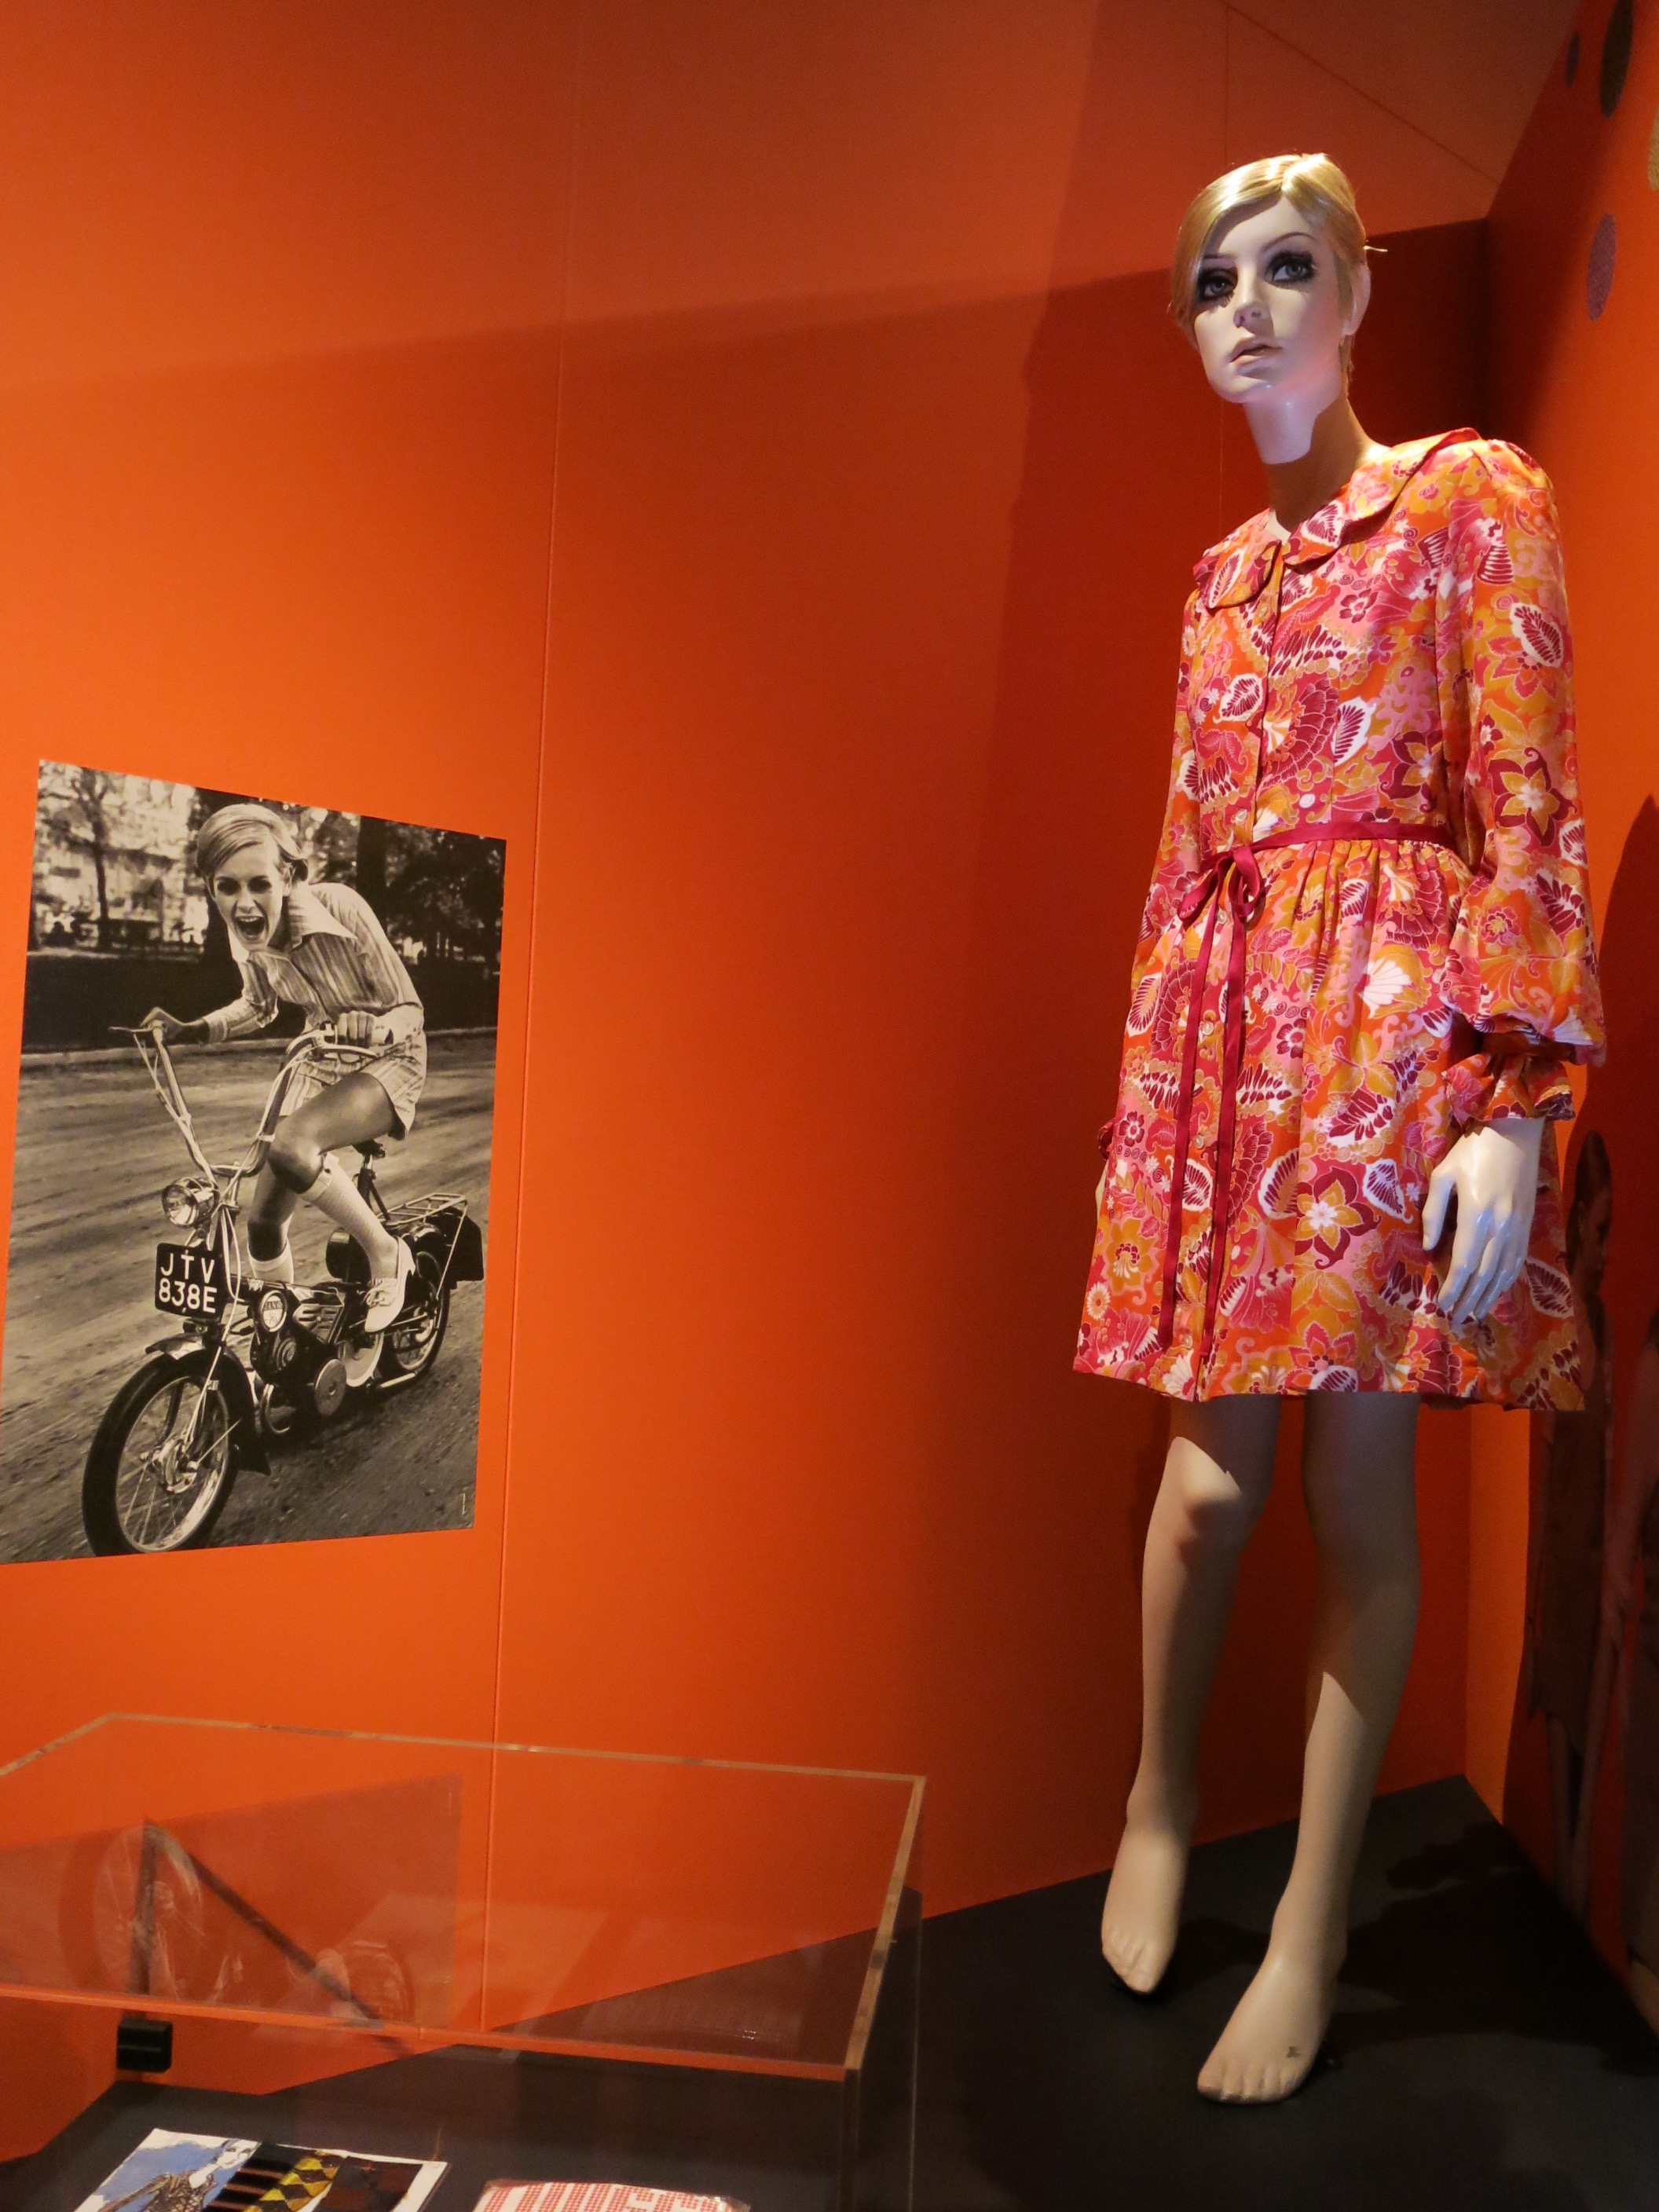 twiggy-mannequin-and-mini-dress-with-twiggy-poster